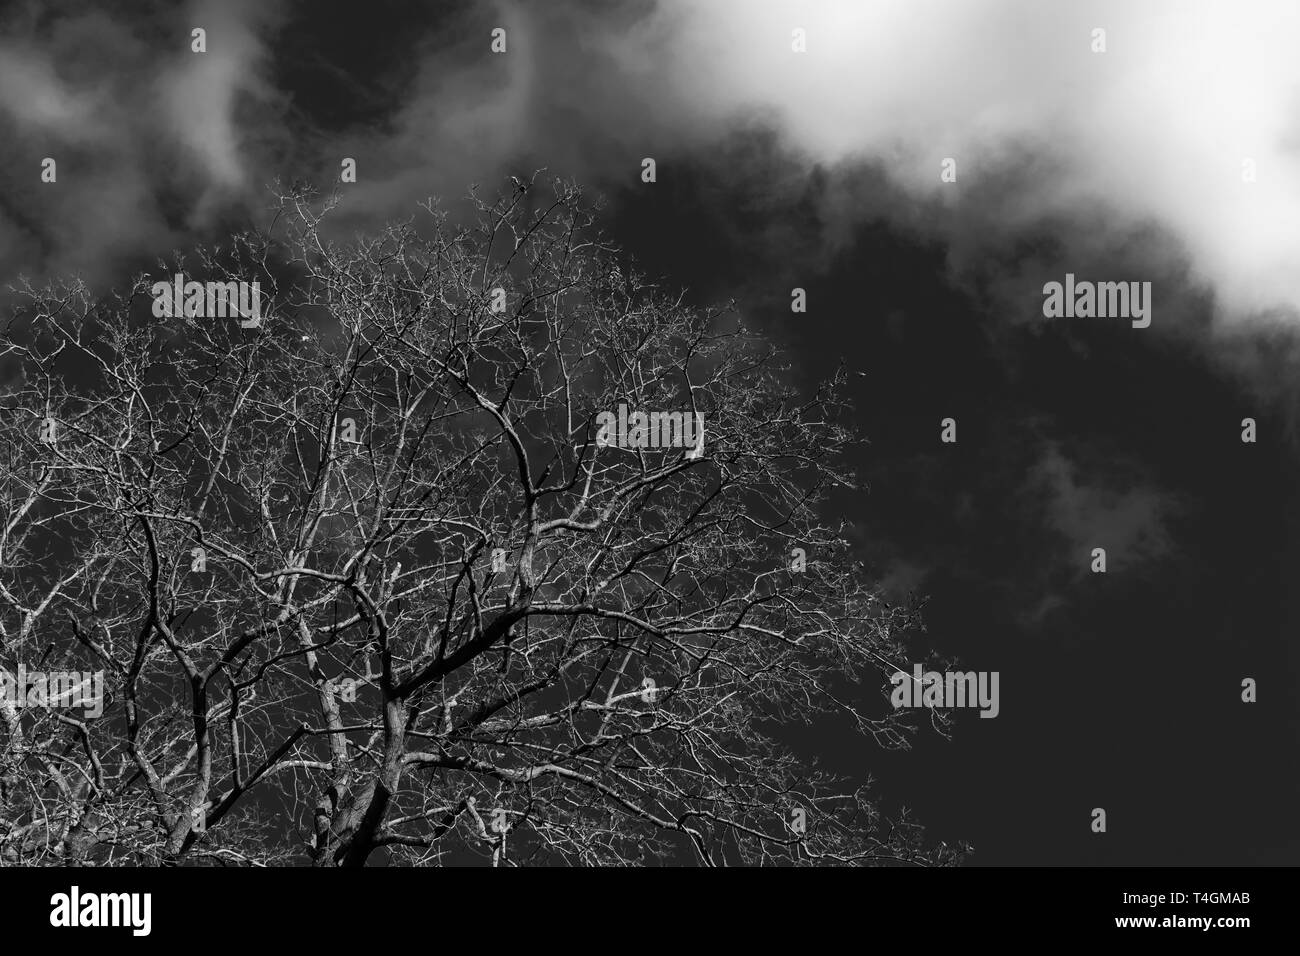 A tall tree, branches, and twigs reaching into a dark cloudy sky in black and white - Stock Image